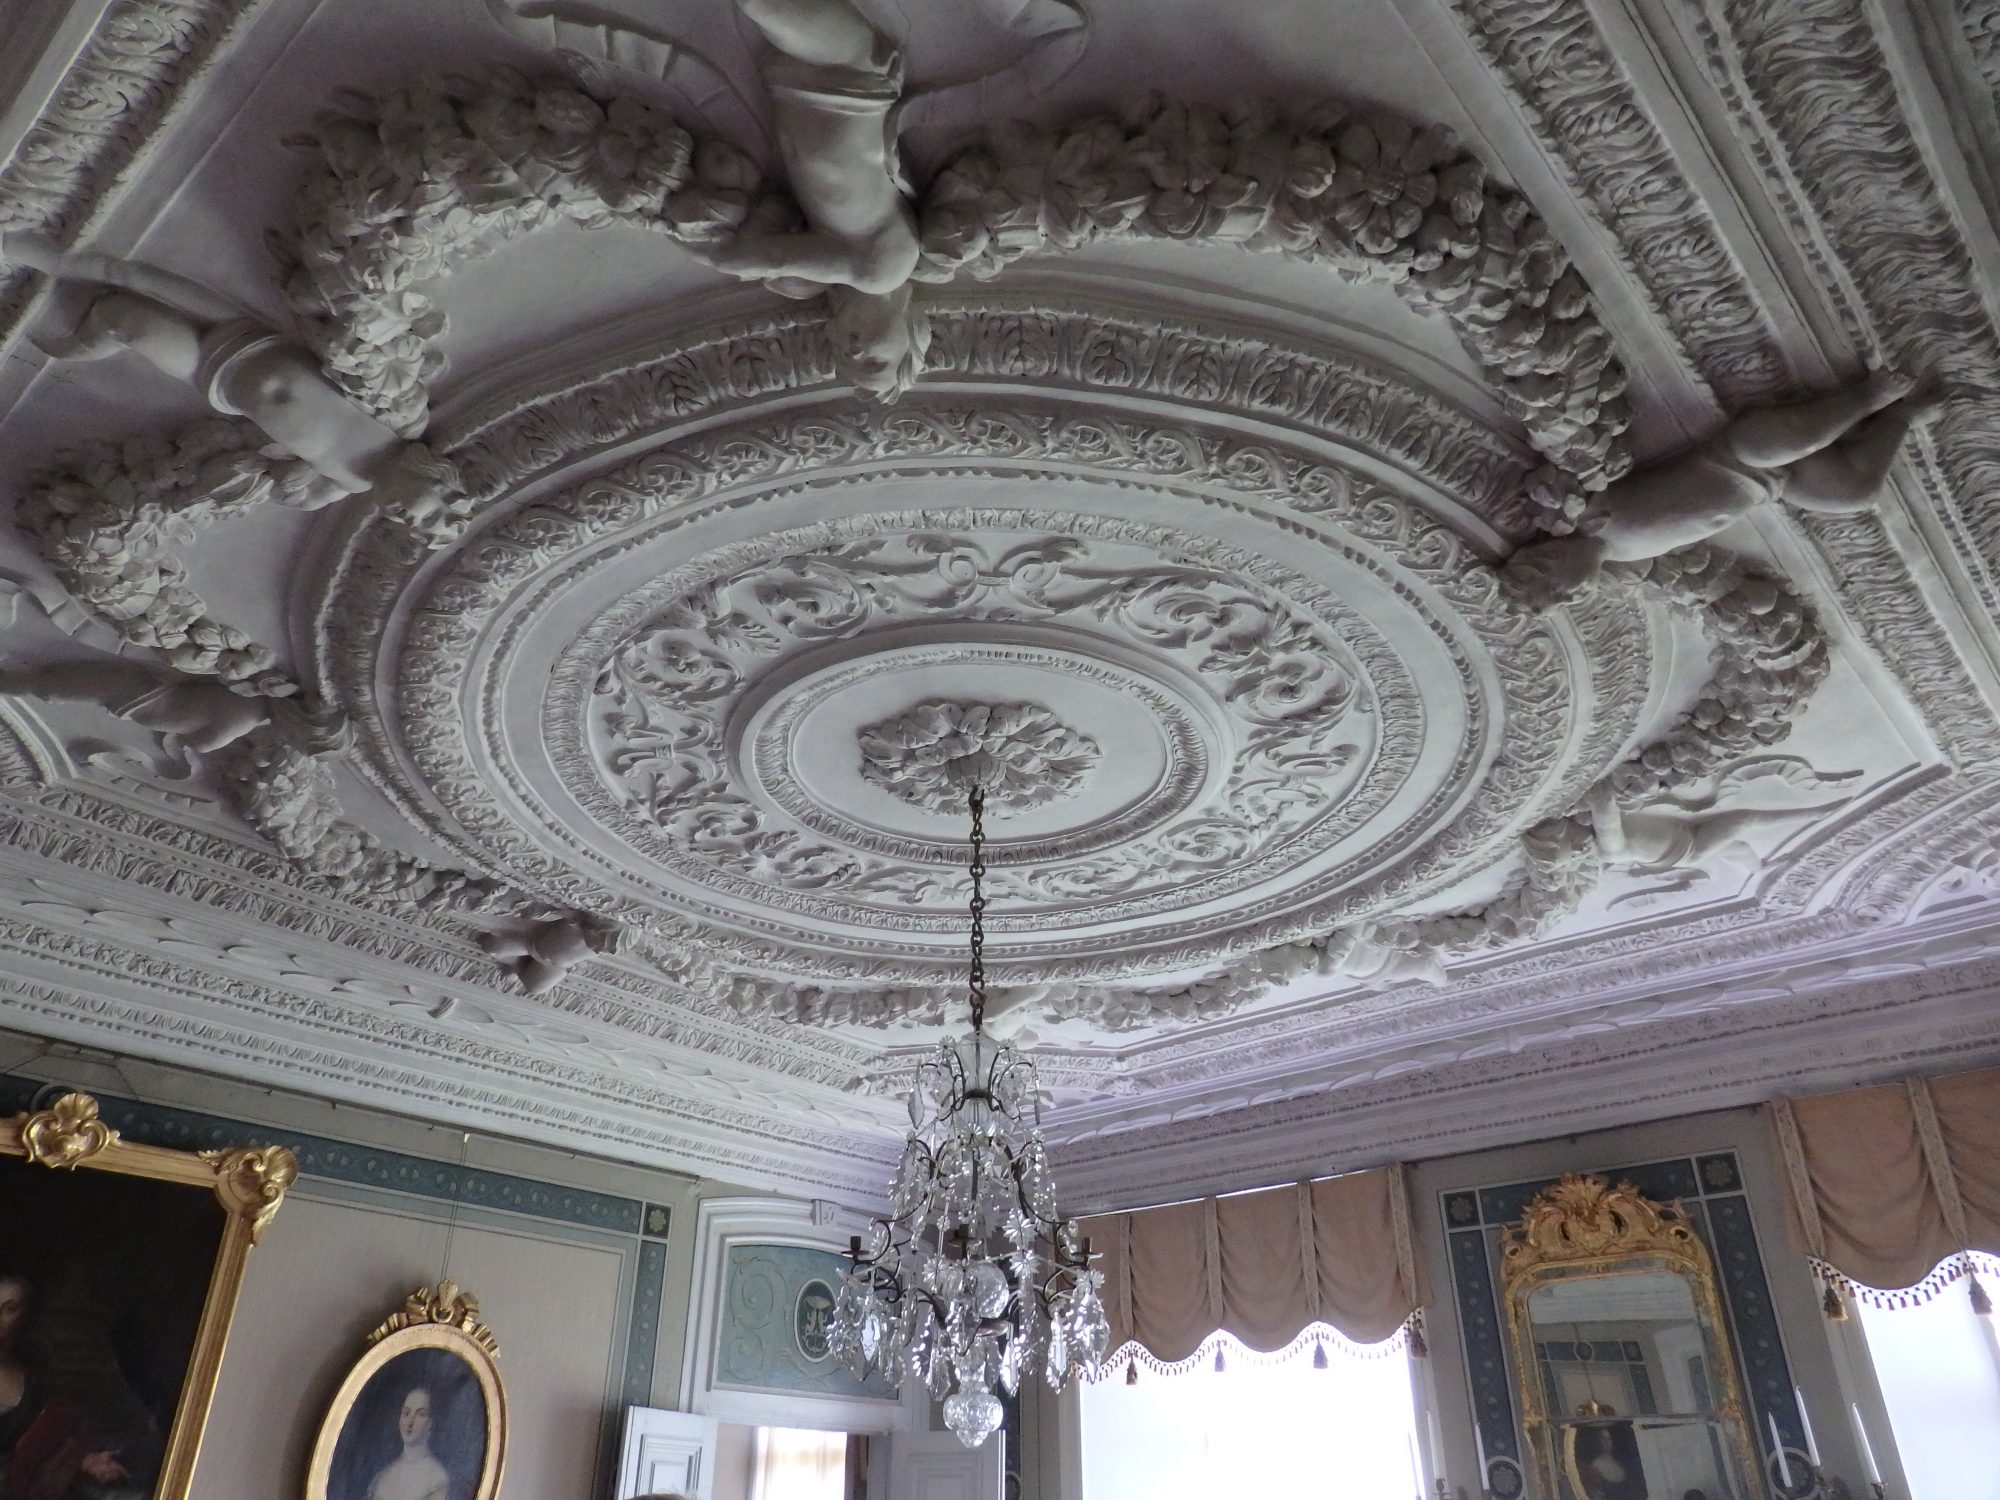 A ceiling in Nynäs manor house